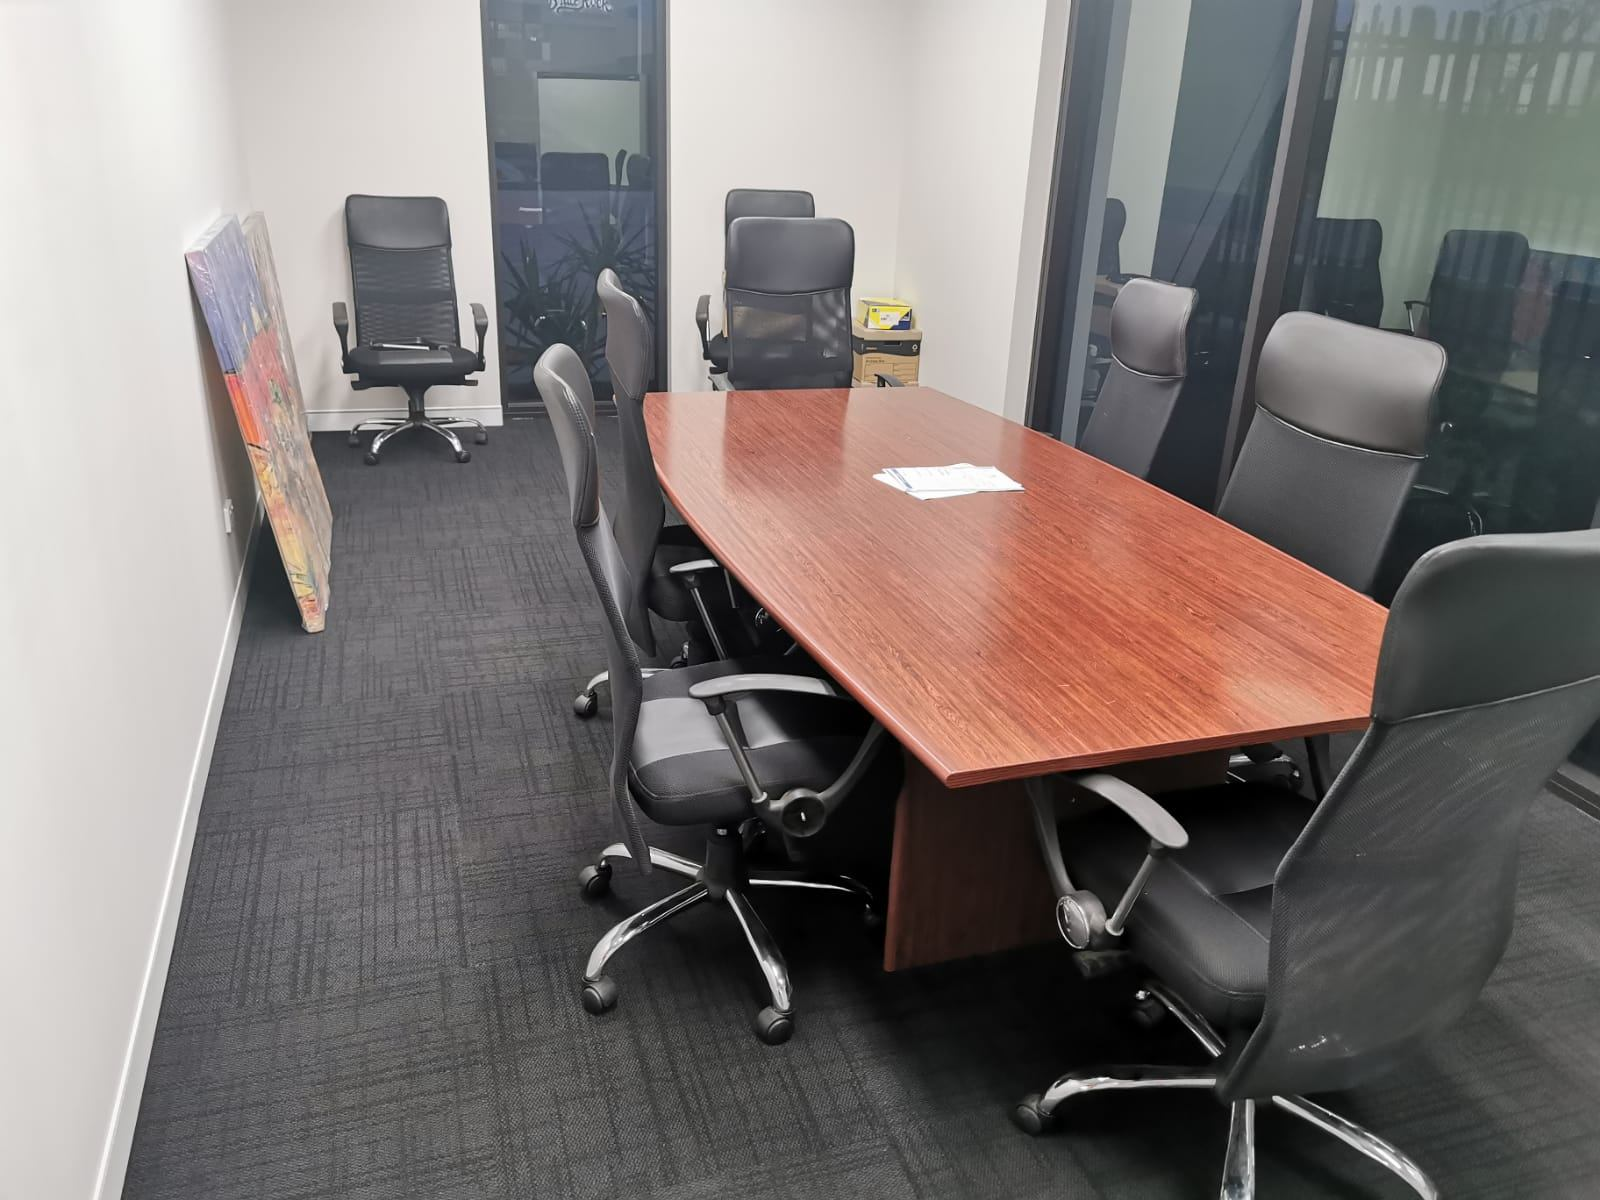 Completely cleaned office ready for a new day.